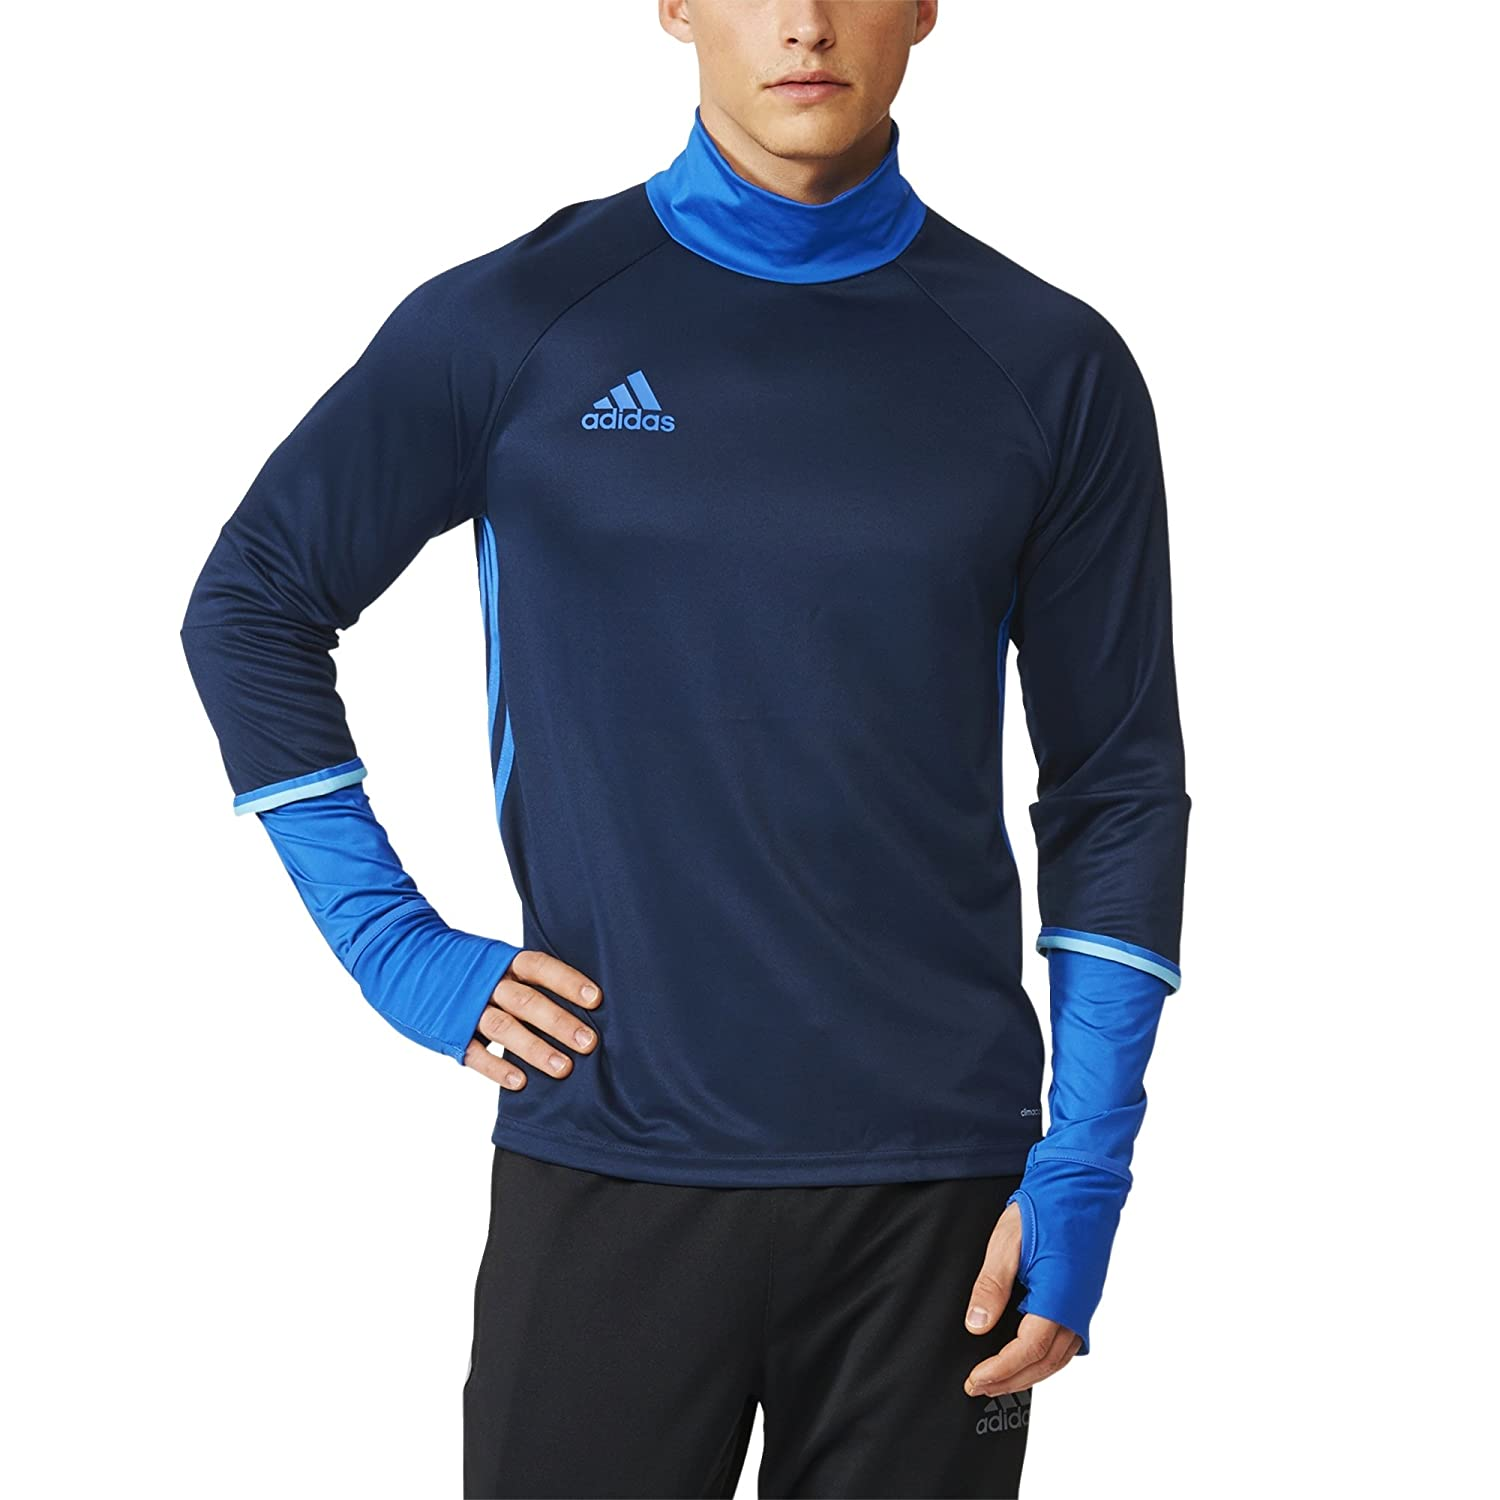 adidas Men's Condivo16 Training Top